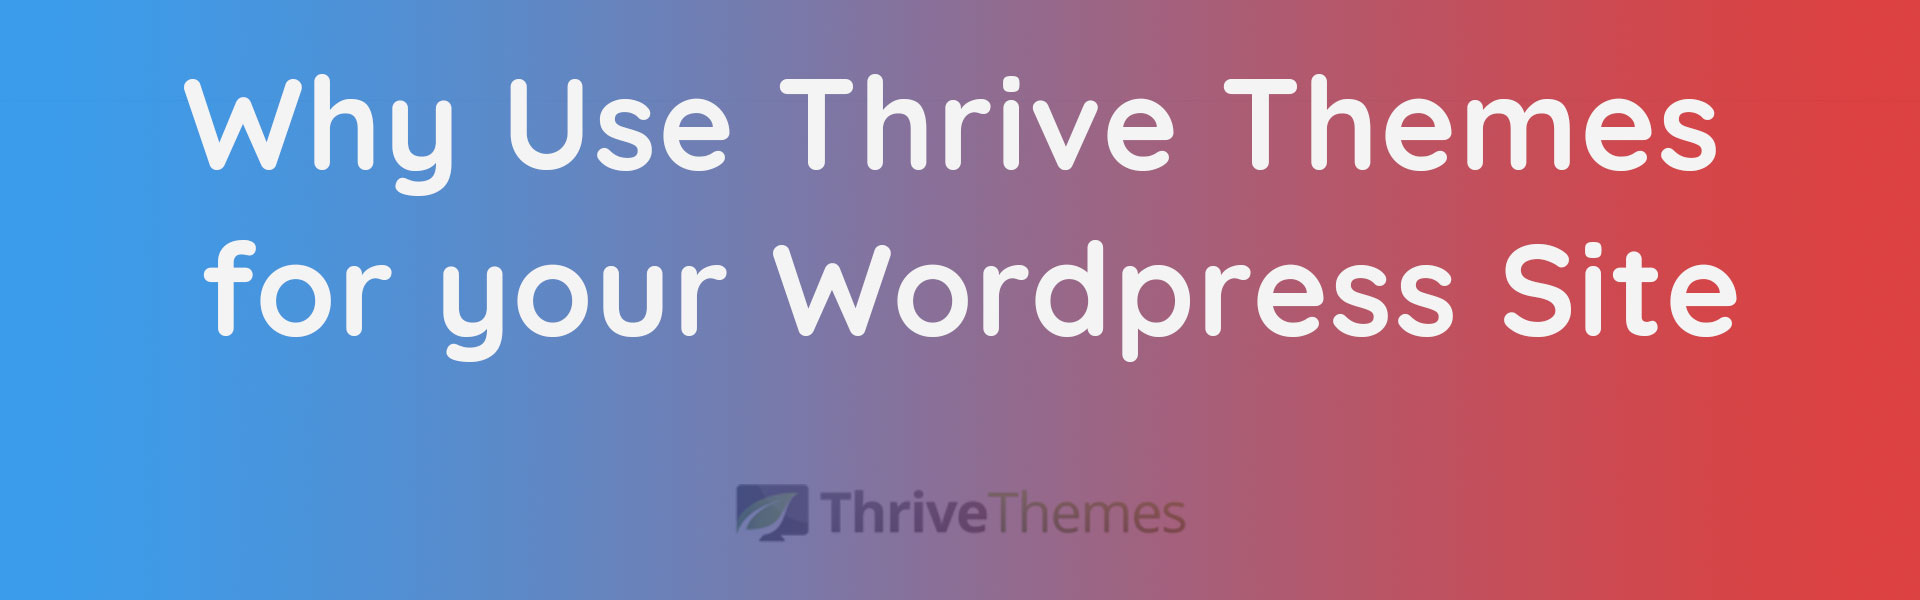 Tutorial WordPress Themes Thrive Themes